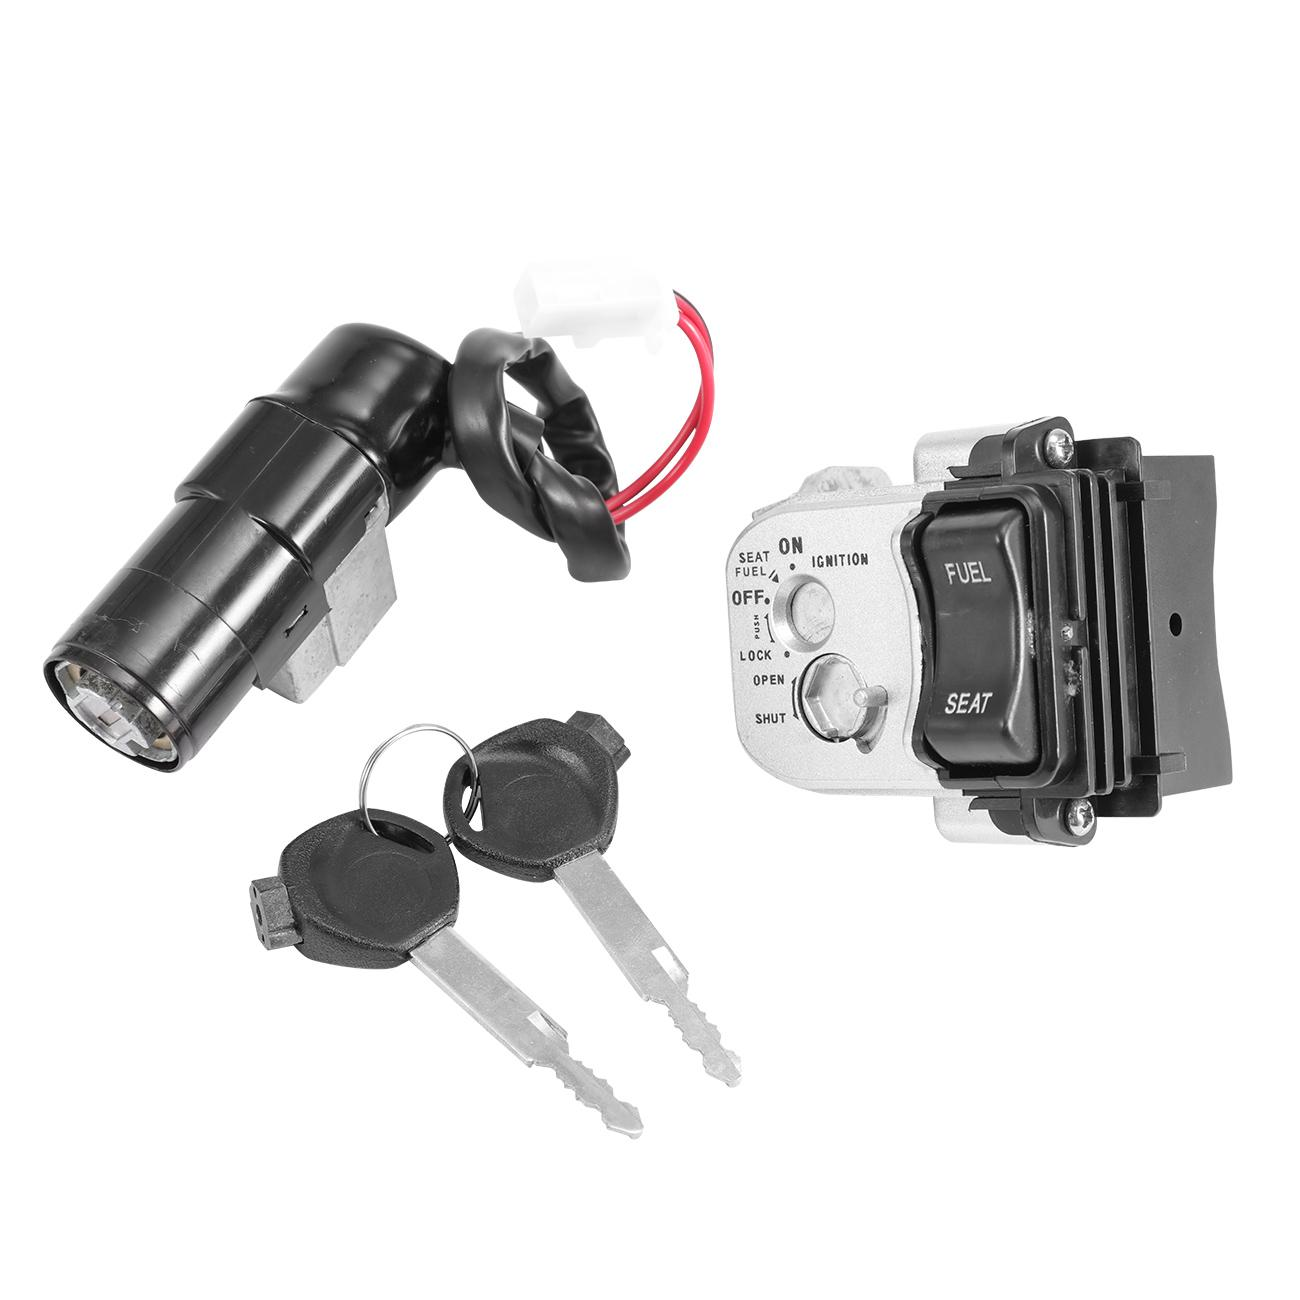 Ignition Switch Barrel Lock With Keys For Honda PCX 125 150 2010 2011 2012 2013